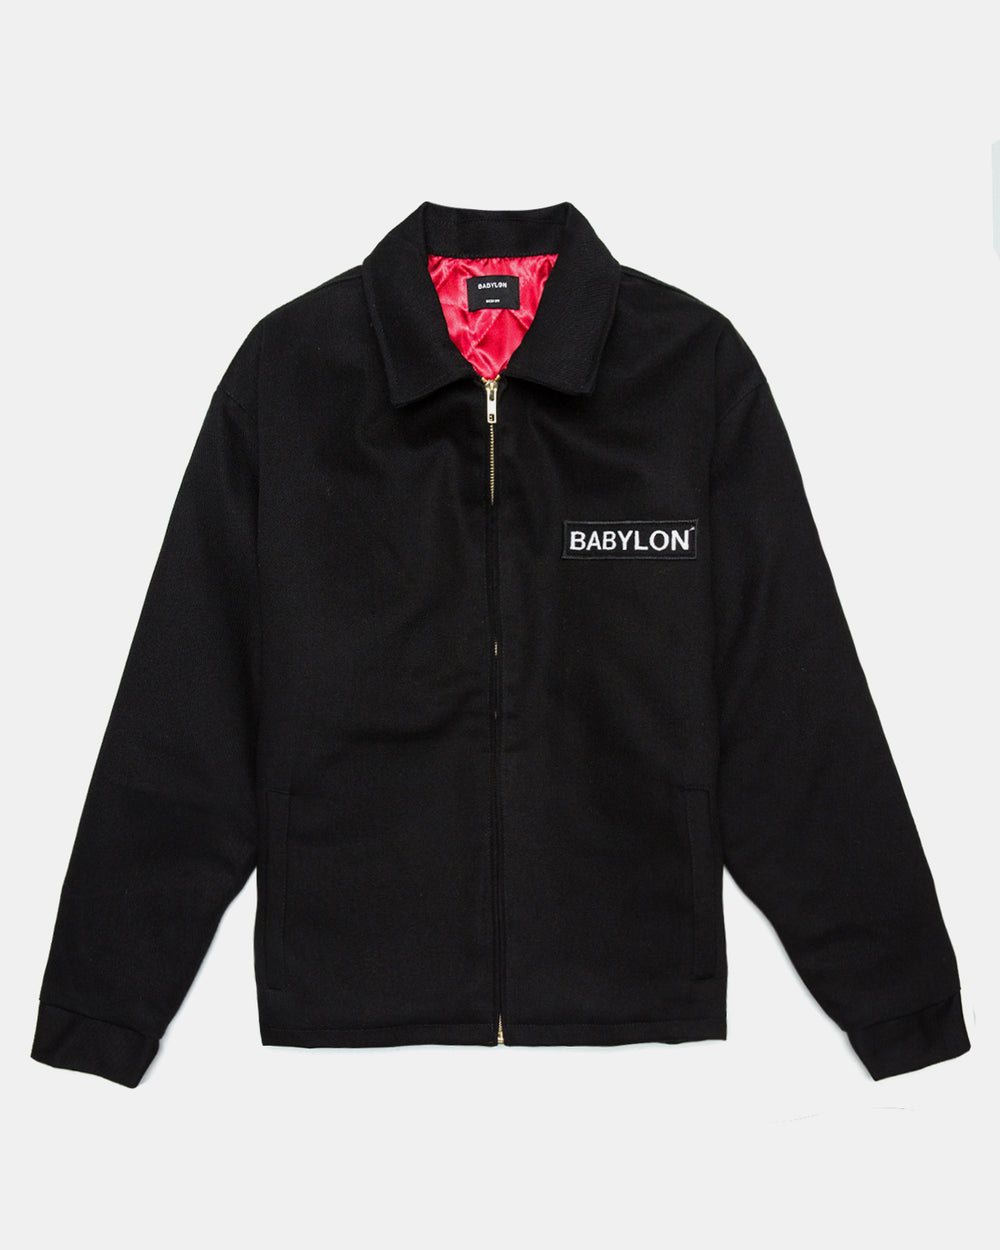 Babylon LA - Cross Us Jacket (Black)